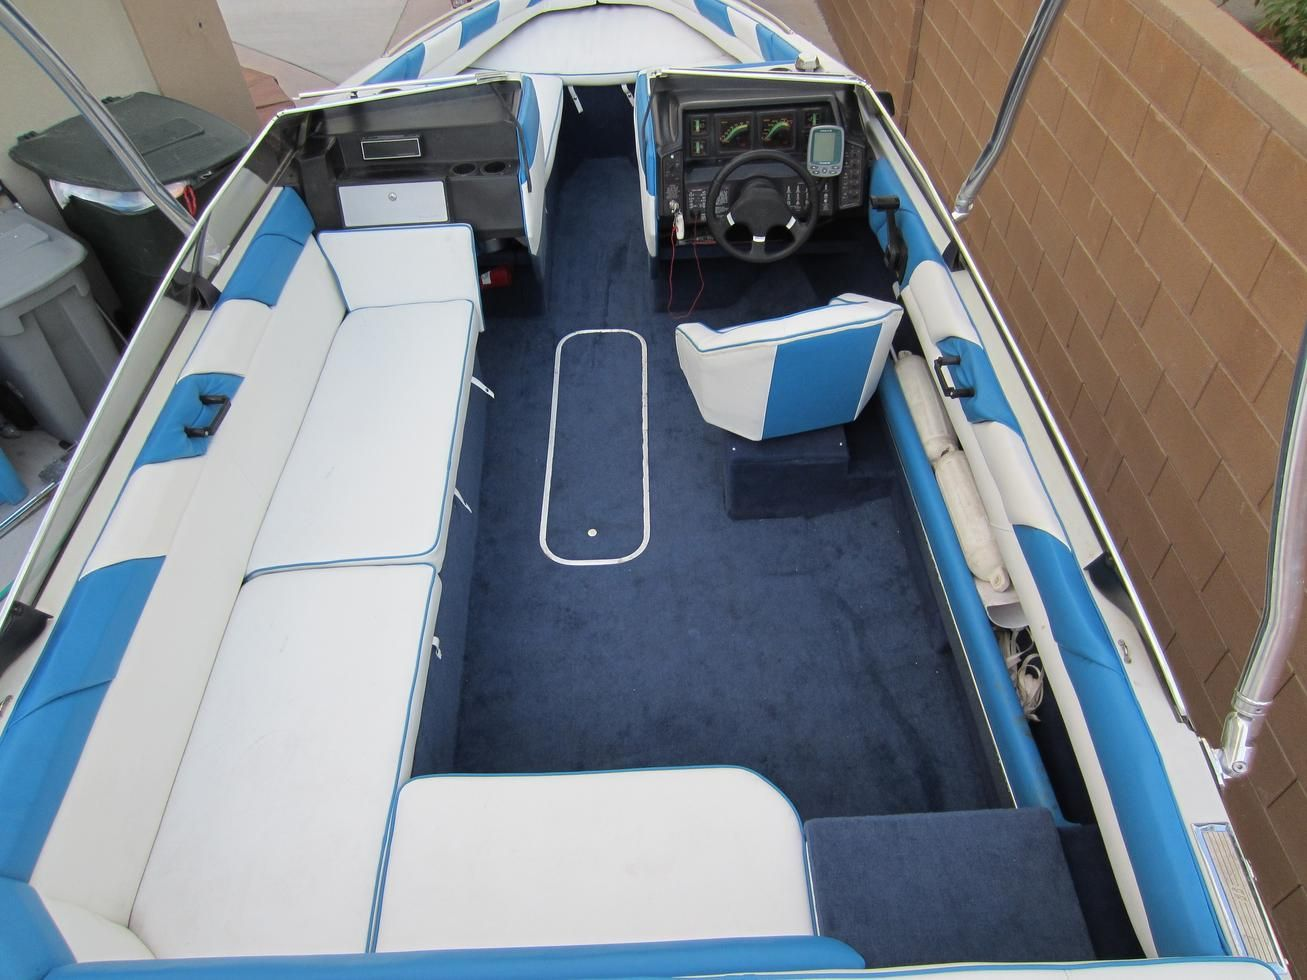 medium resolution of 1989 bayliner capri with live well pics google search